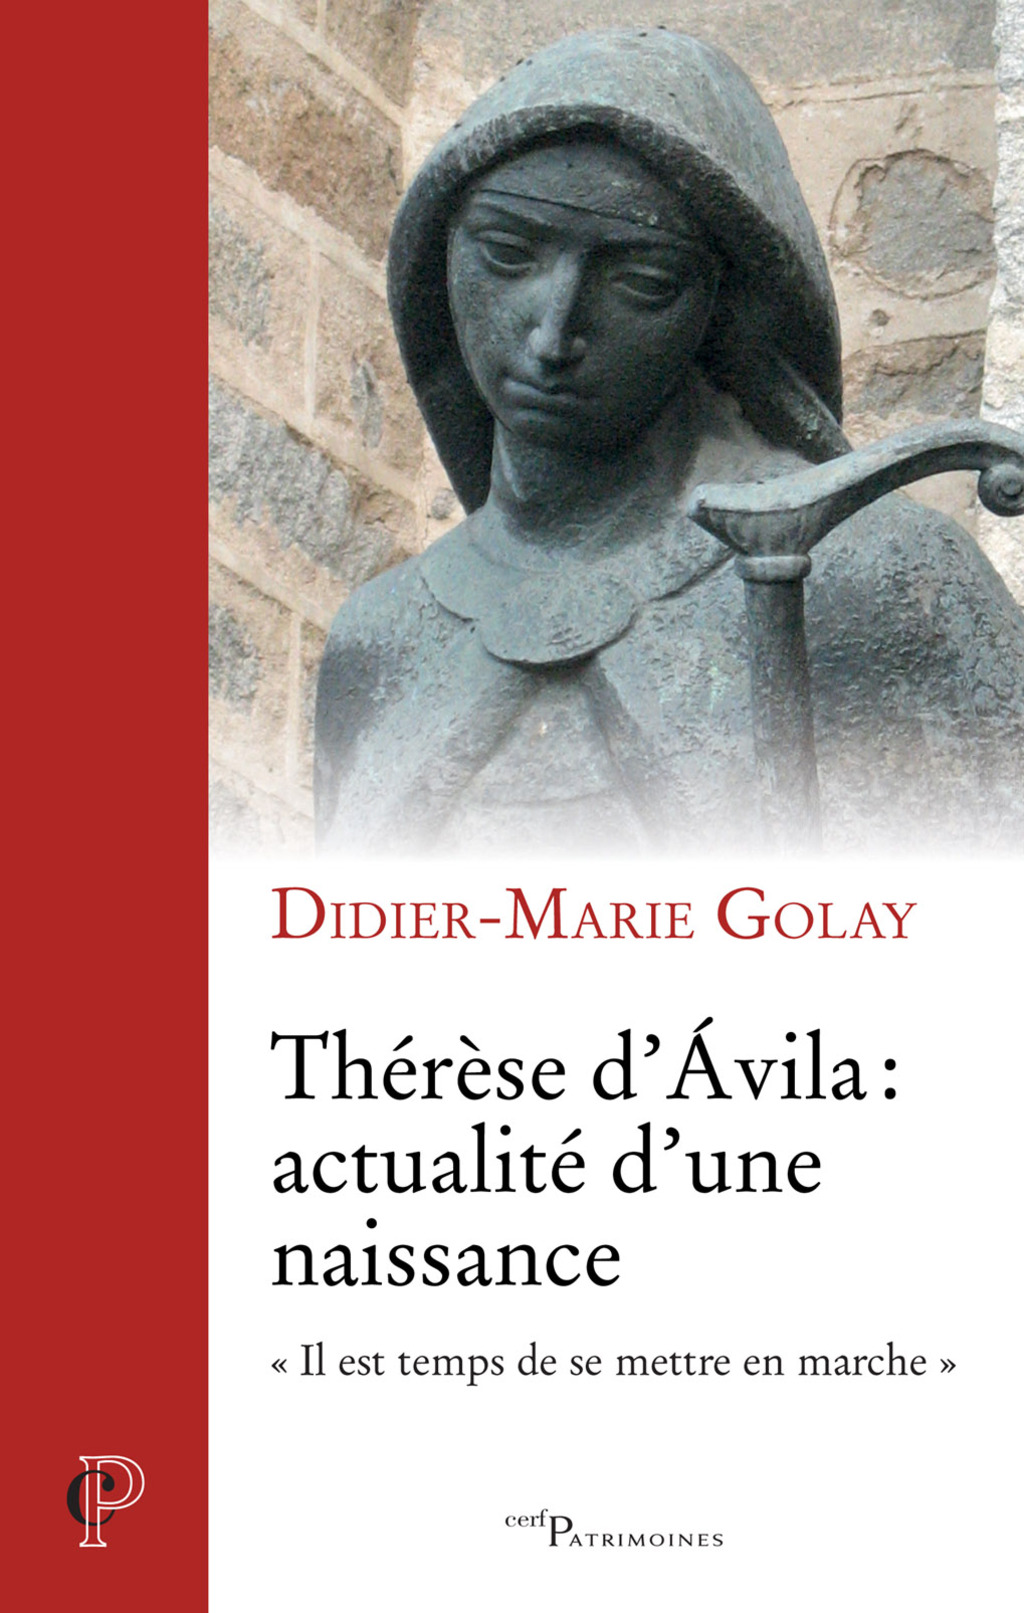 By Didier-Marie Golay PRINTISBN: 9782204105767 E-TEXT ISBN: 9782204108430 Edition: 0